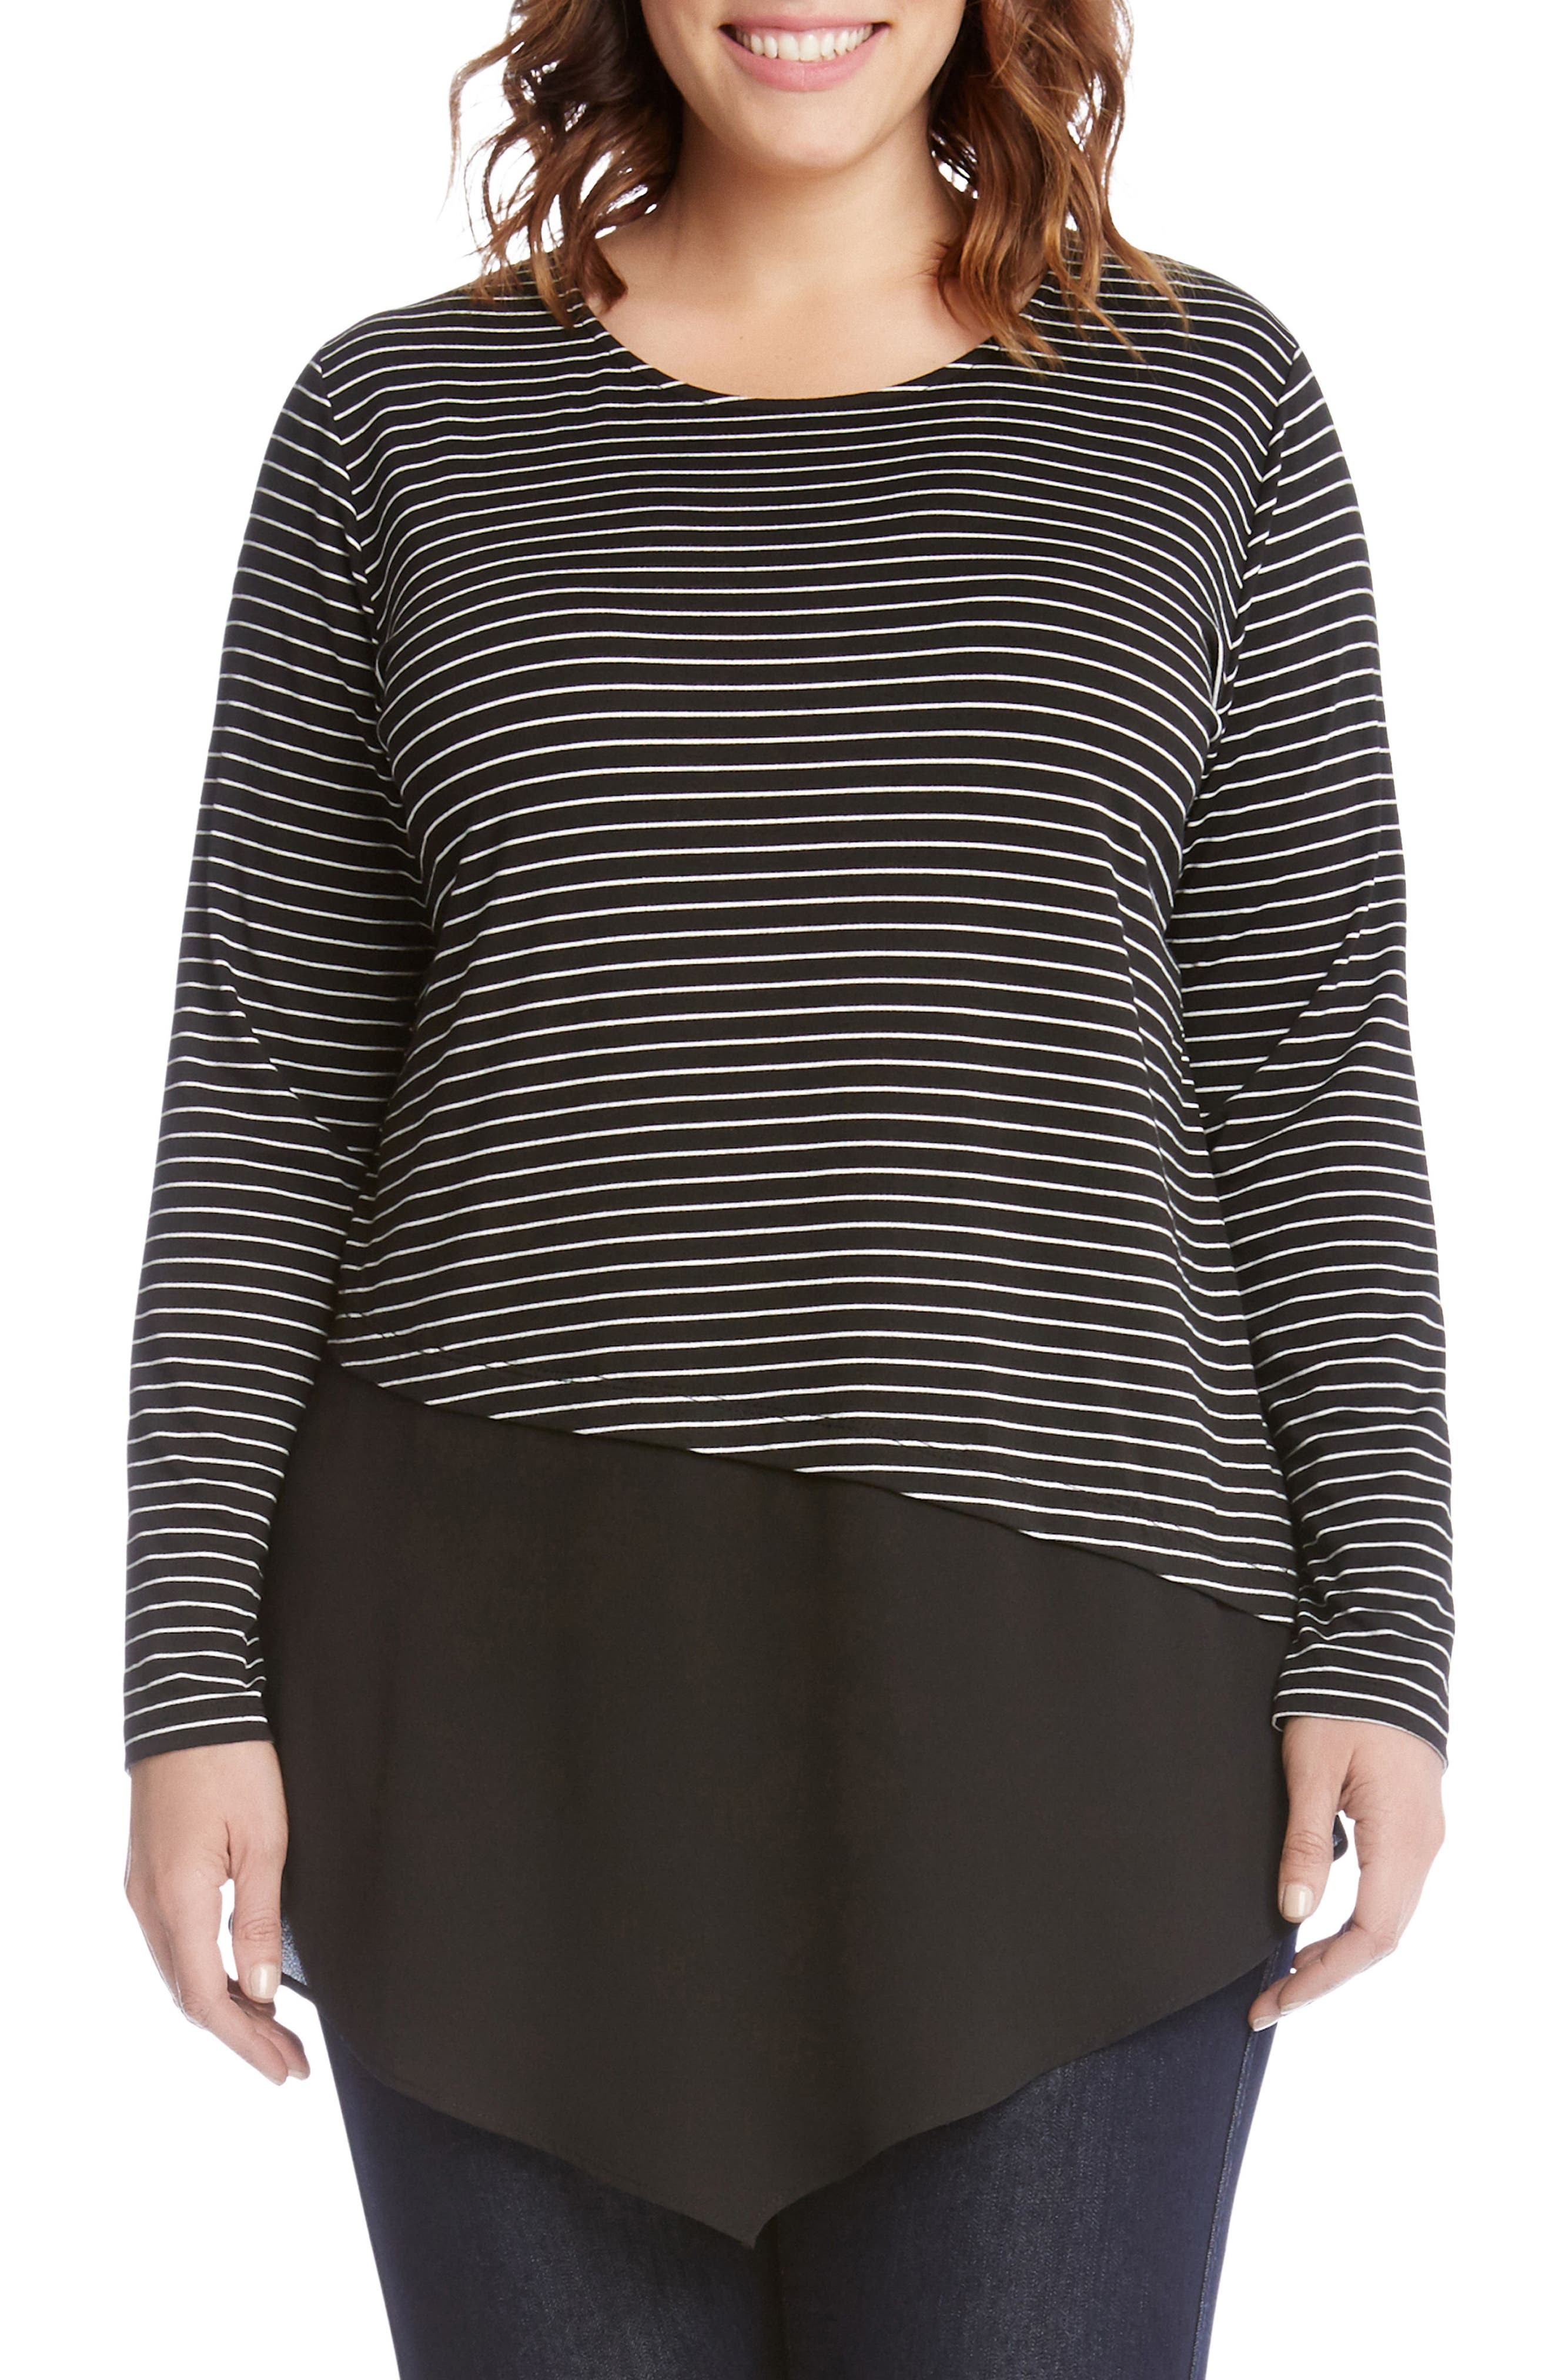 Main Image - Karen Kane Asymmetrical Stripe Mixed Media Top (Plus Size)